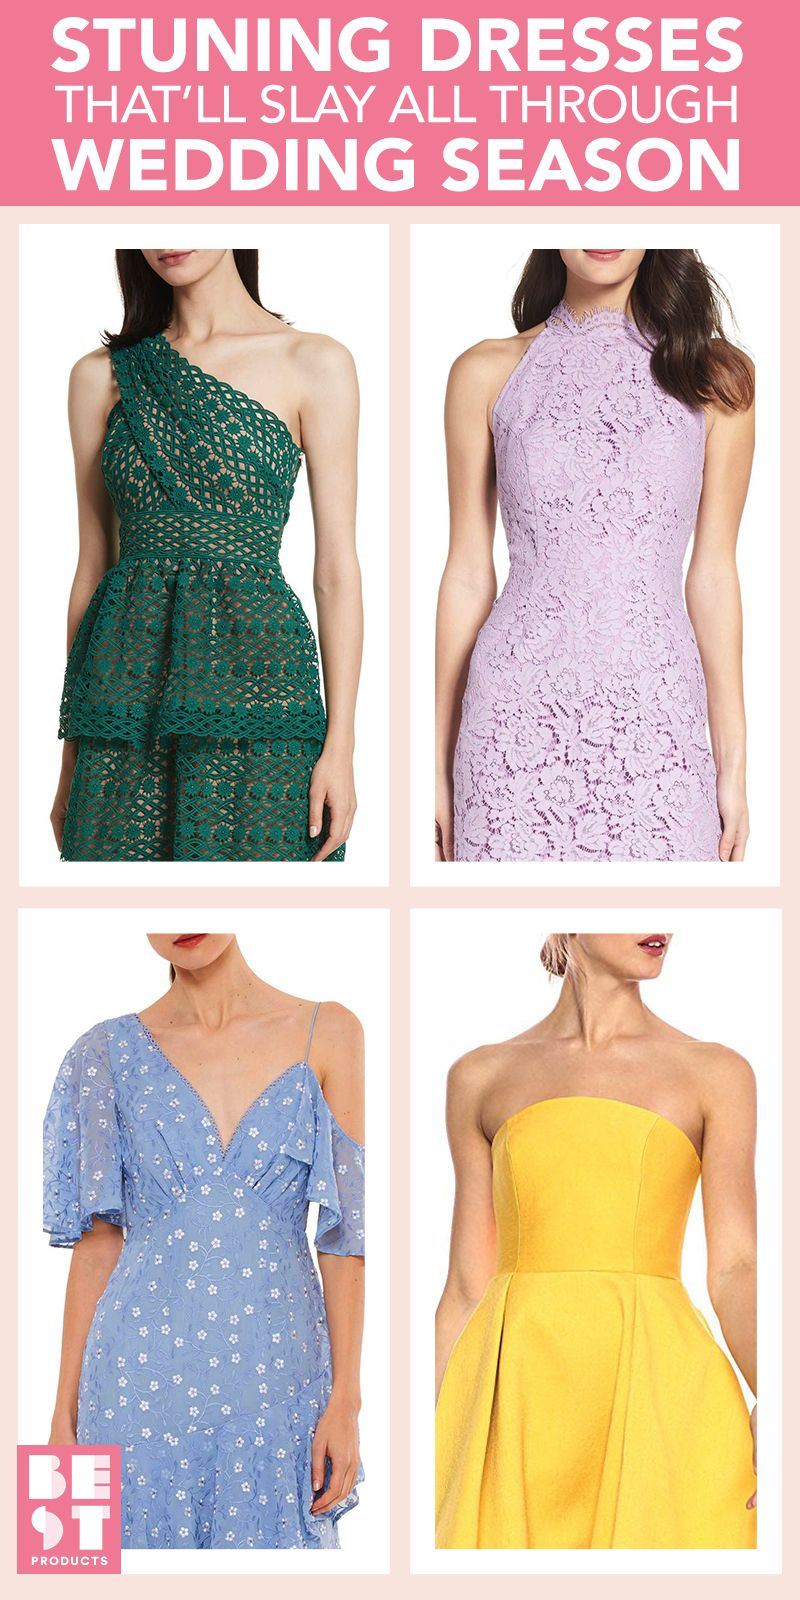 10 Best Wedding Guest Dresses for Spring 2018 - Stylish Dresses to ...